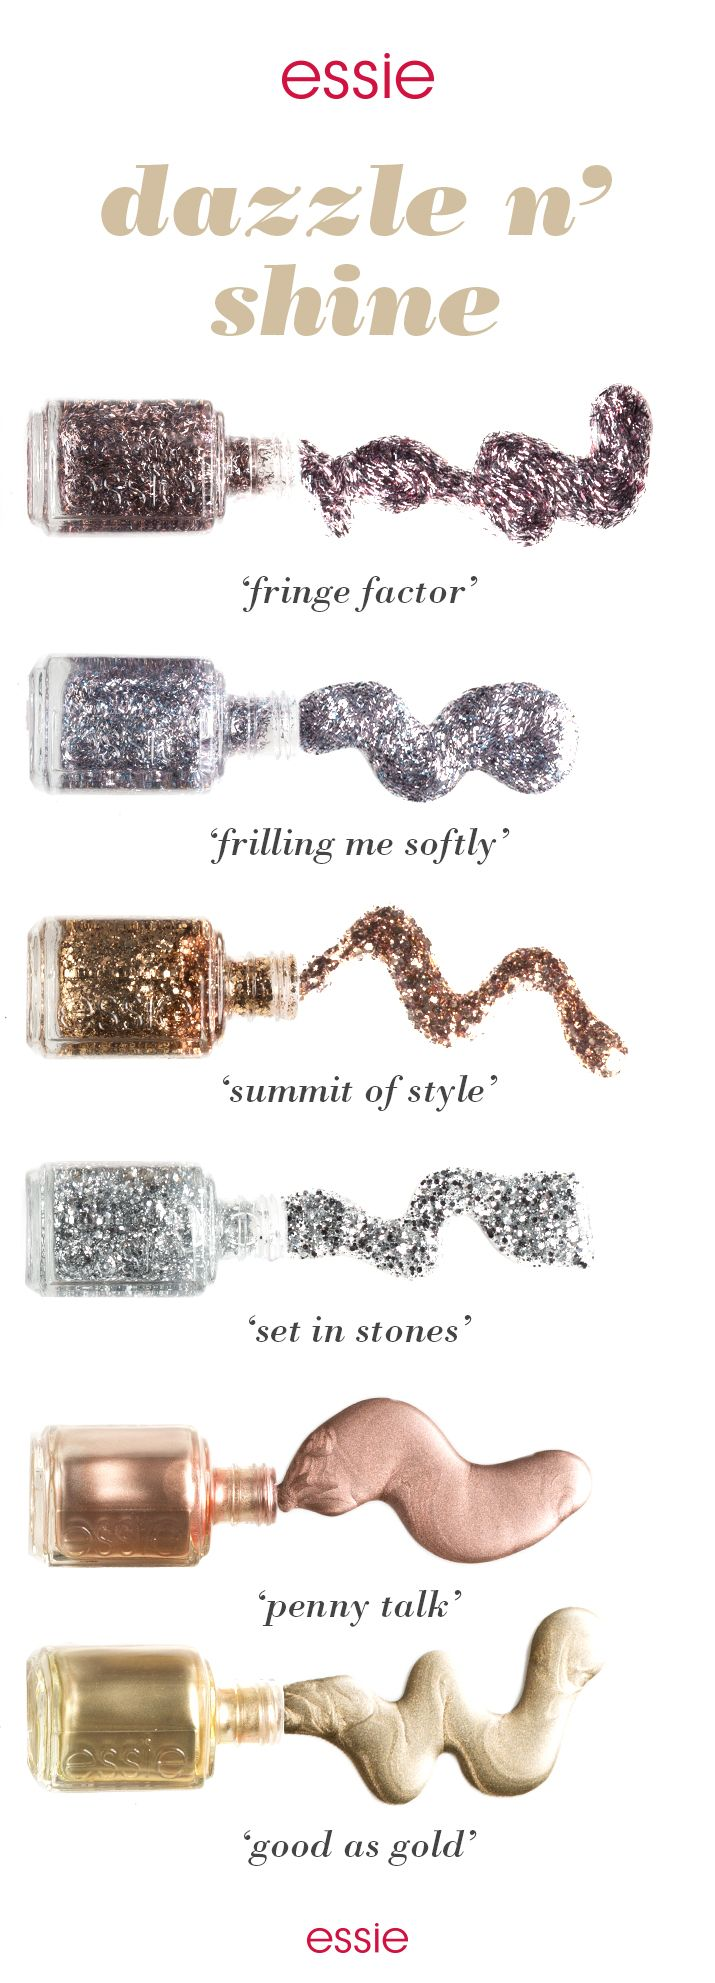 So many metallic shades, so many ways to liven up your winter mani. Get in on this perfection with nail polishes that are glitzy, glam and gorgeous like gunmetal and pink 'fringe factor', platinum and